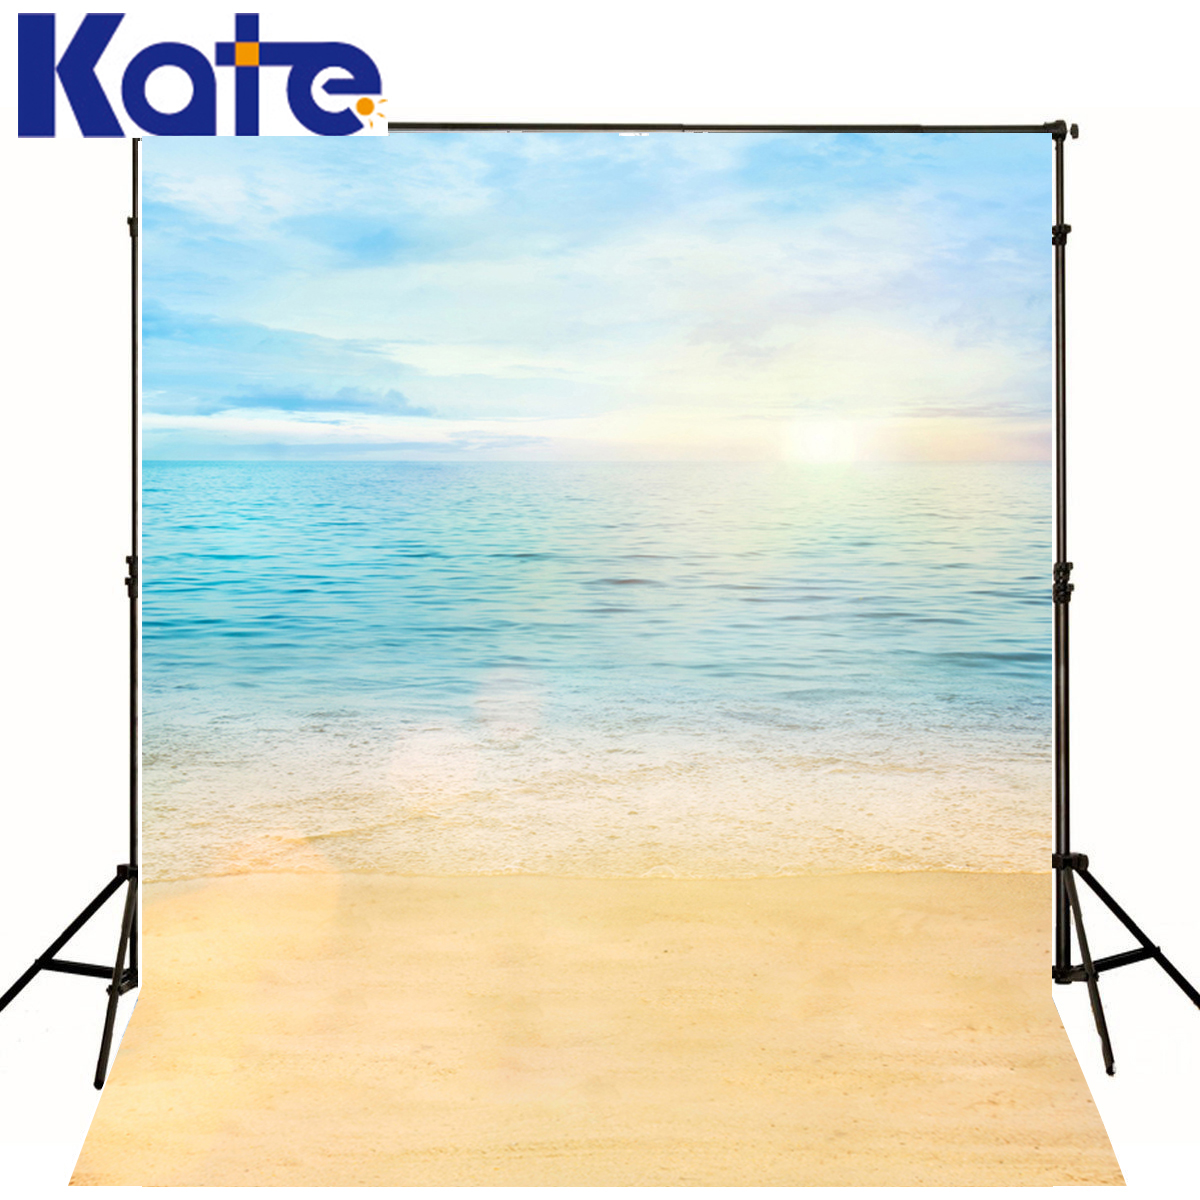 Kate 8x8ft Summer Newborn Background Sea Sunshine Photography Backdrops Children Beach Background for Photography Studio<br>